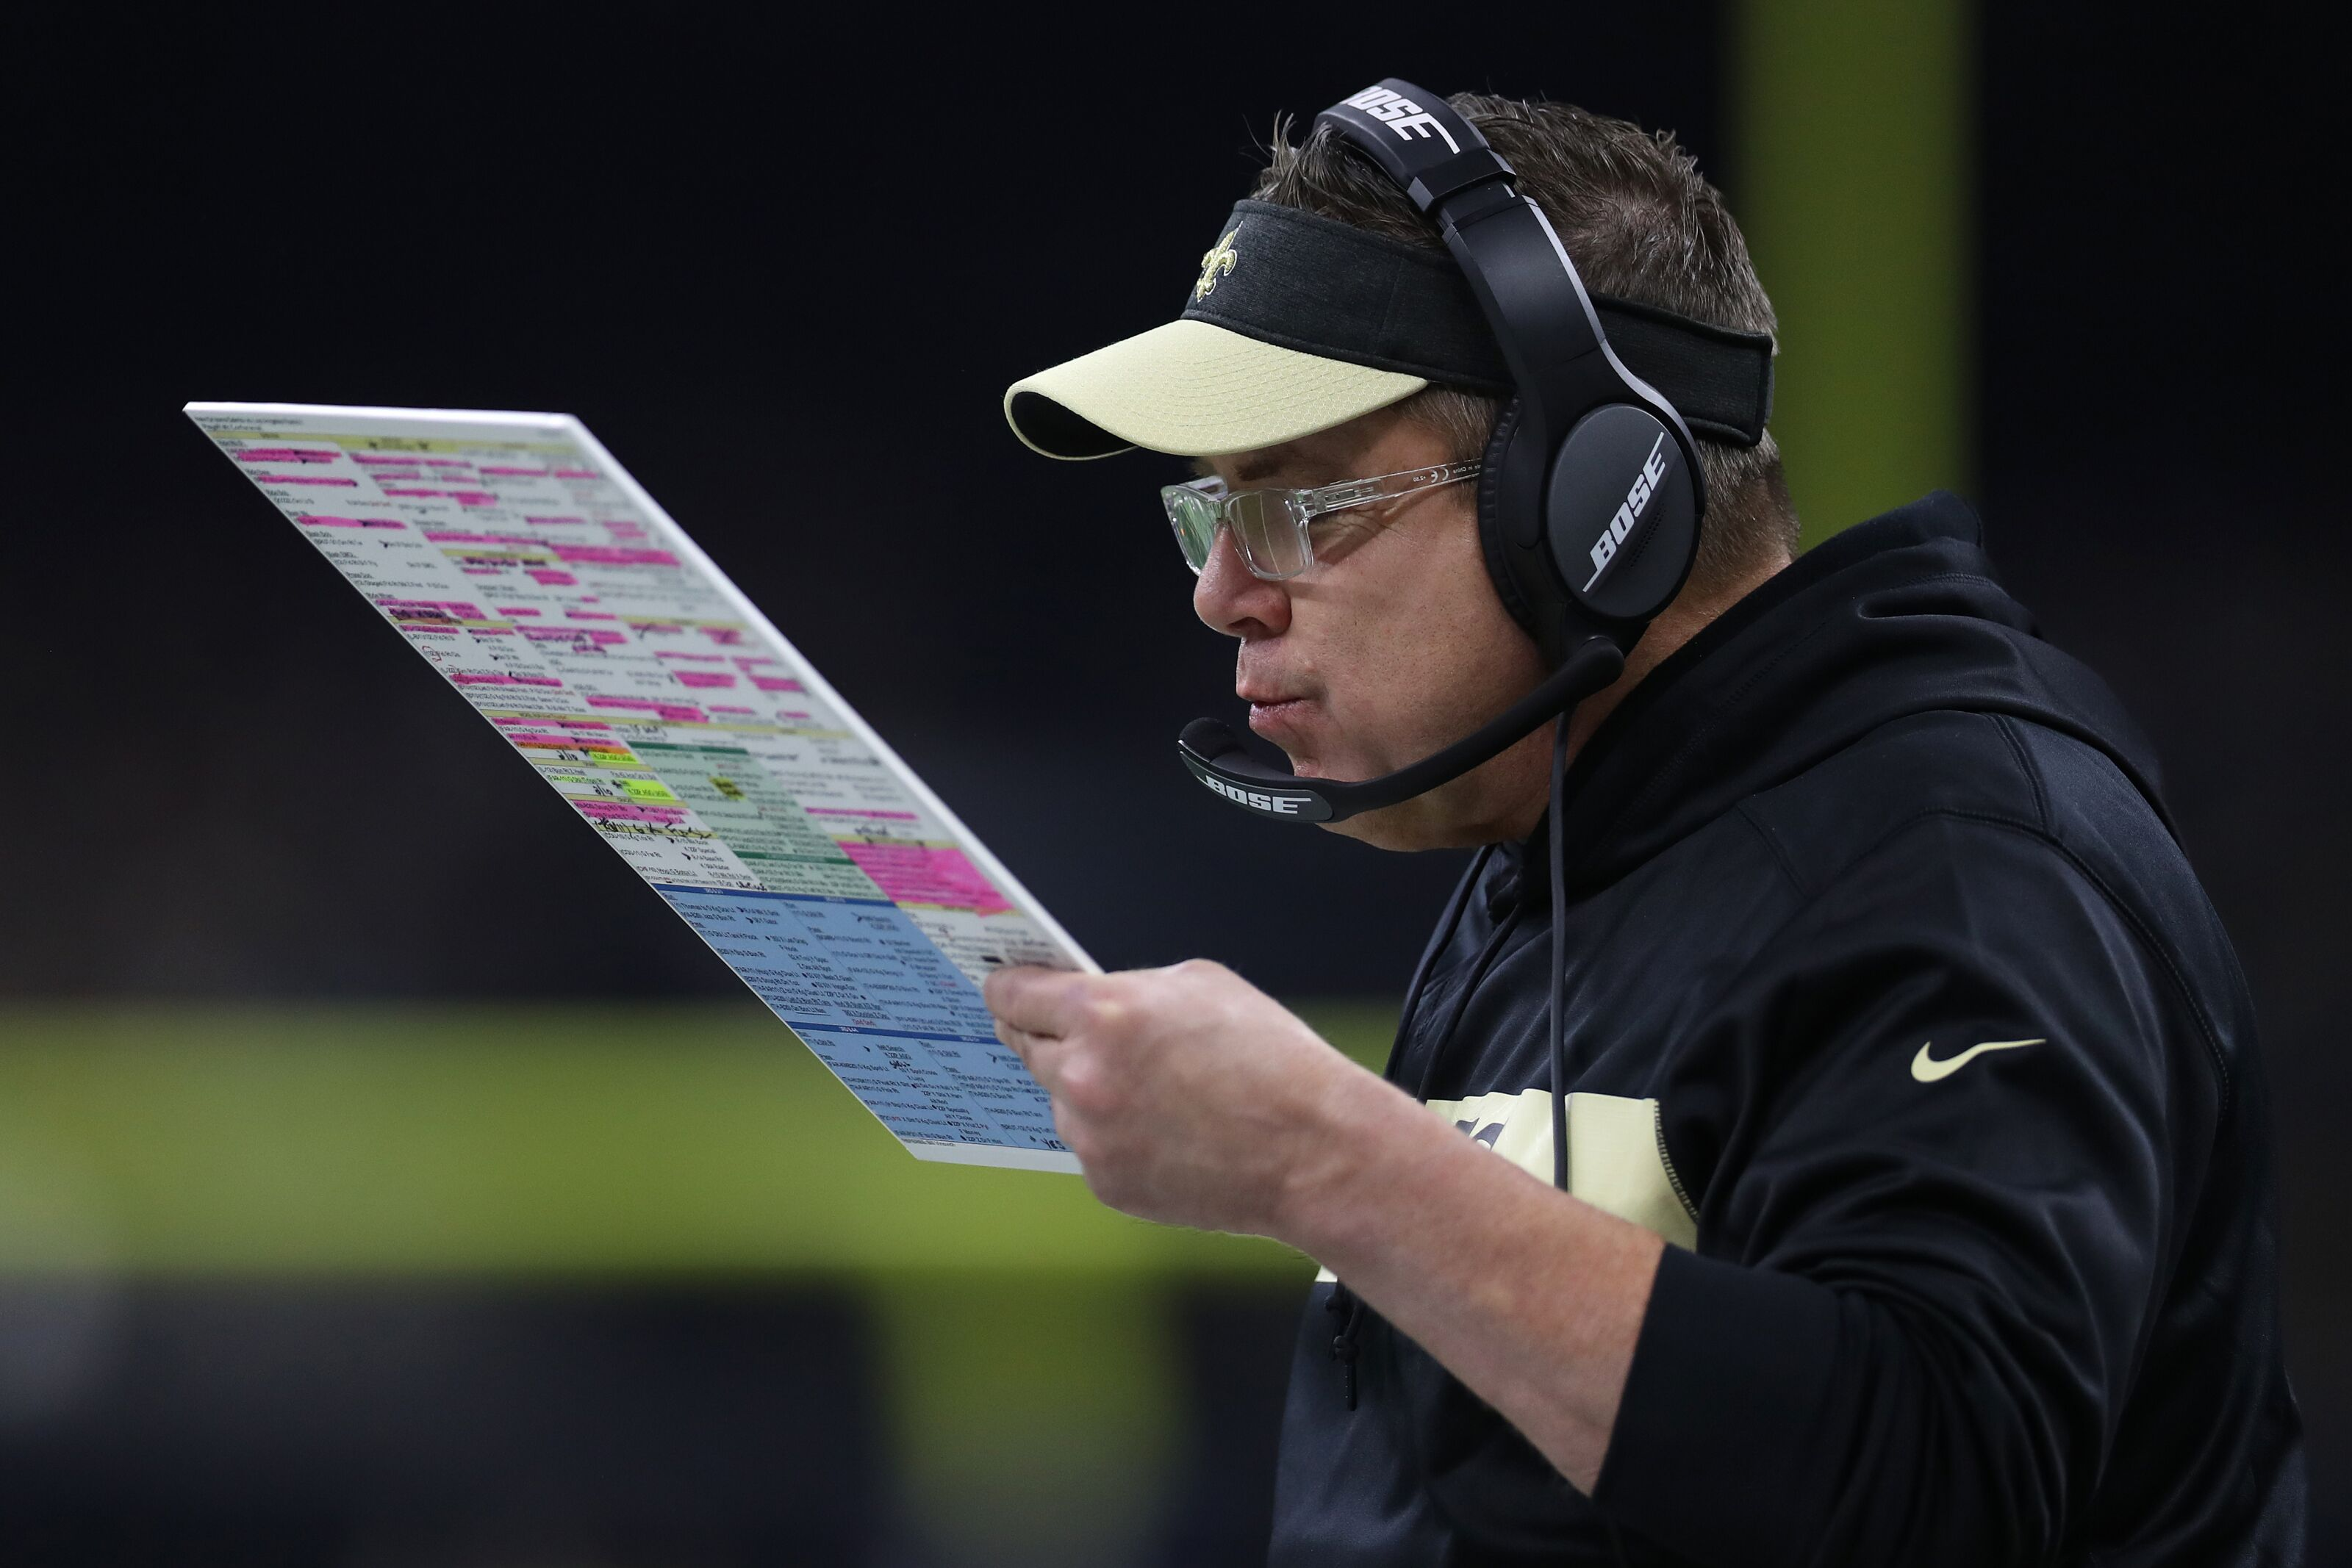 New Orleans Saints: Sean Payton ranked No. 3 in terms of job security